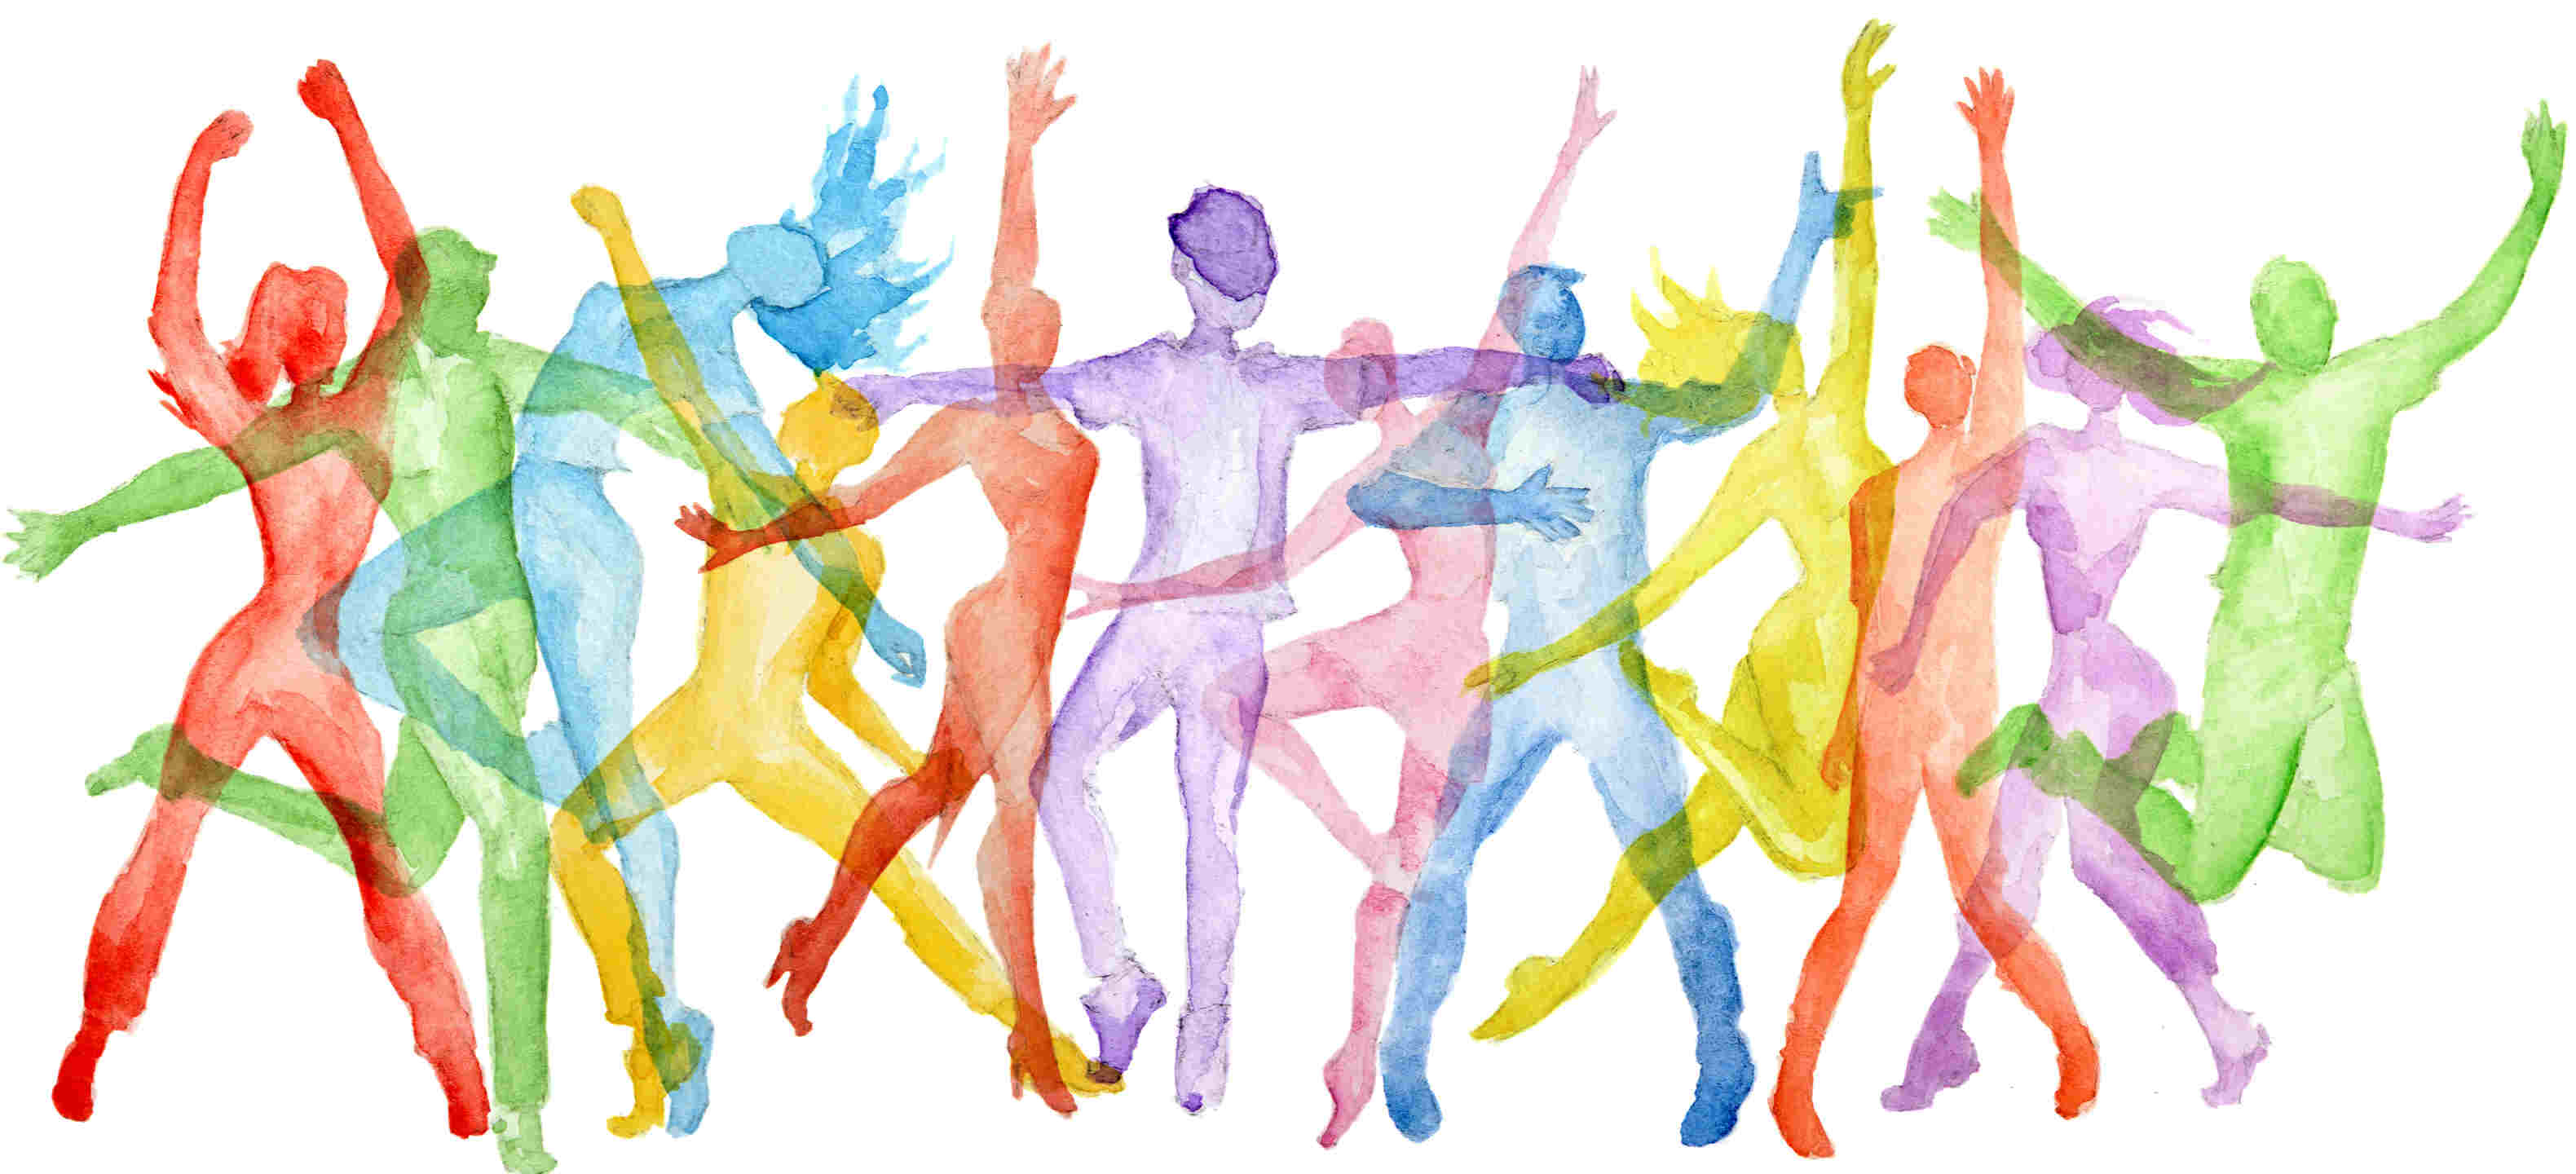 water color painting of silhouettes dancing